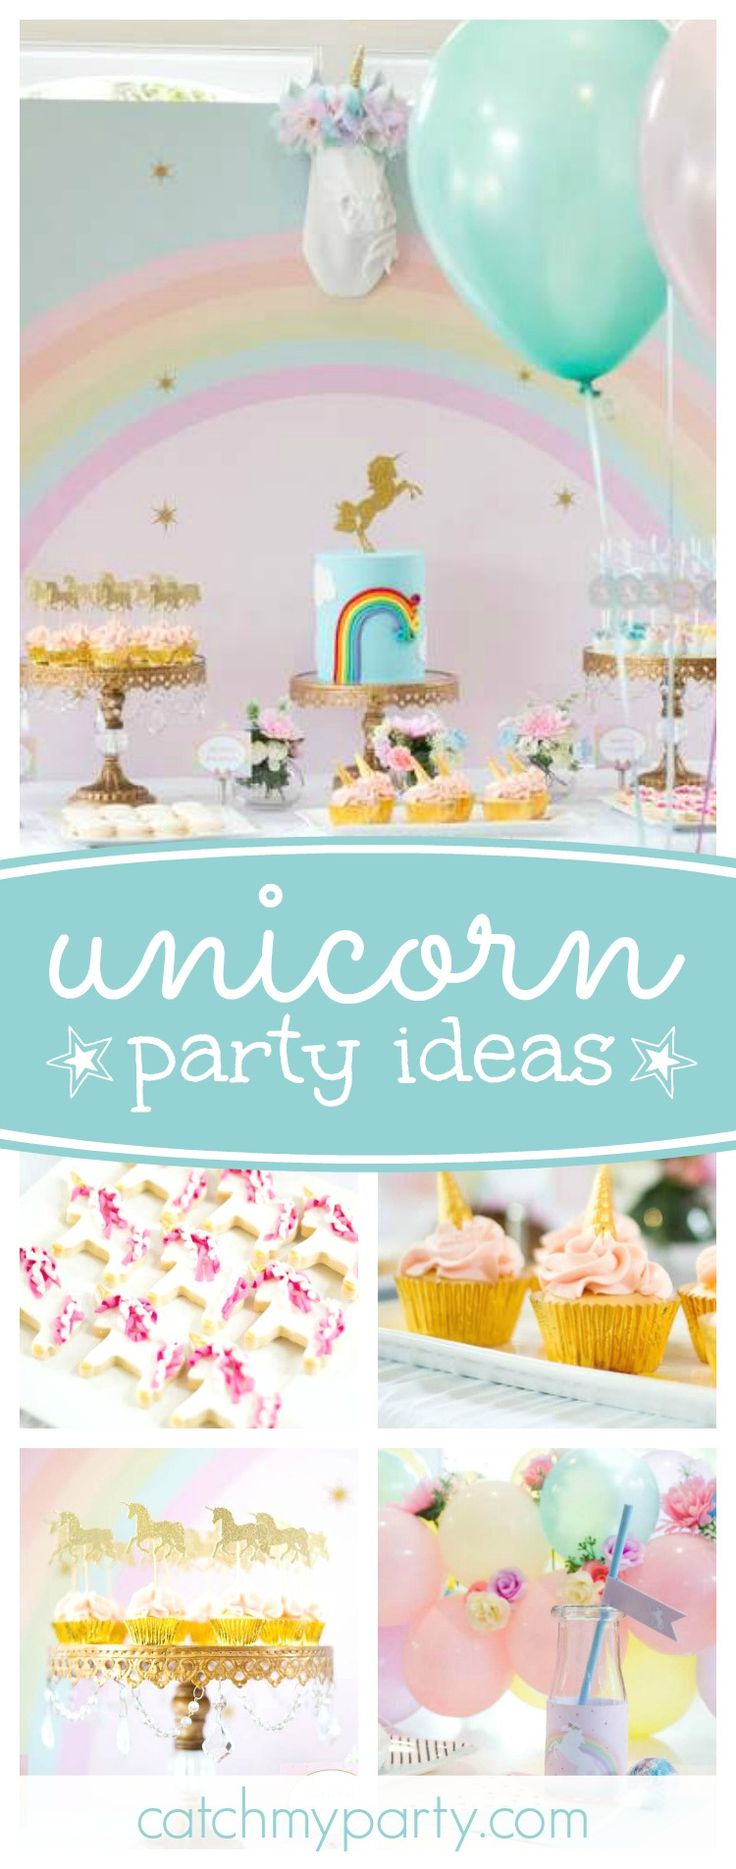 Astonishing 150 Best Images About Unicorn Birthday Party Ideas On Pinterest Hairstyles For Women Draintrainus